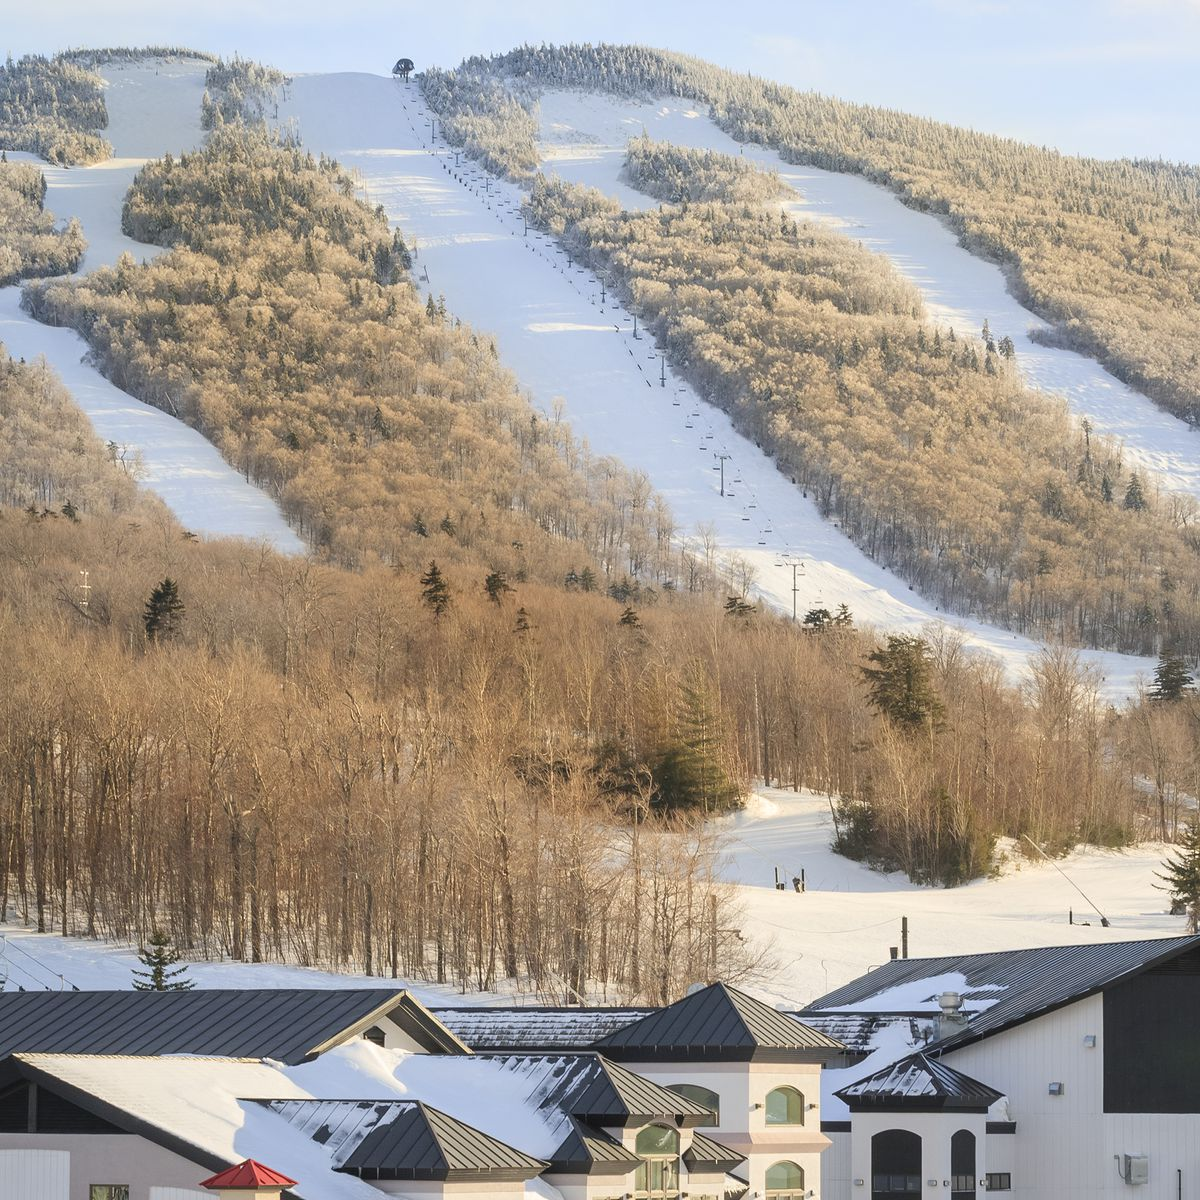 A hillside cleared for ski runs looms above a small mountain town.